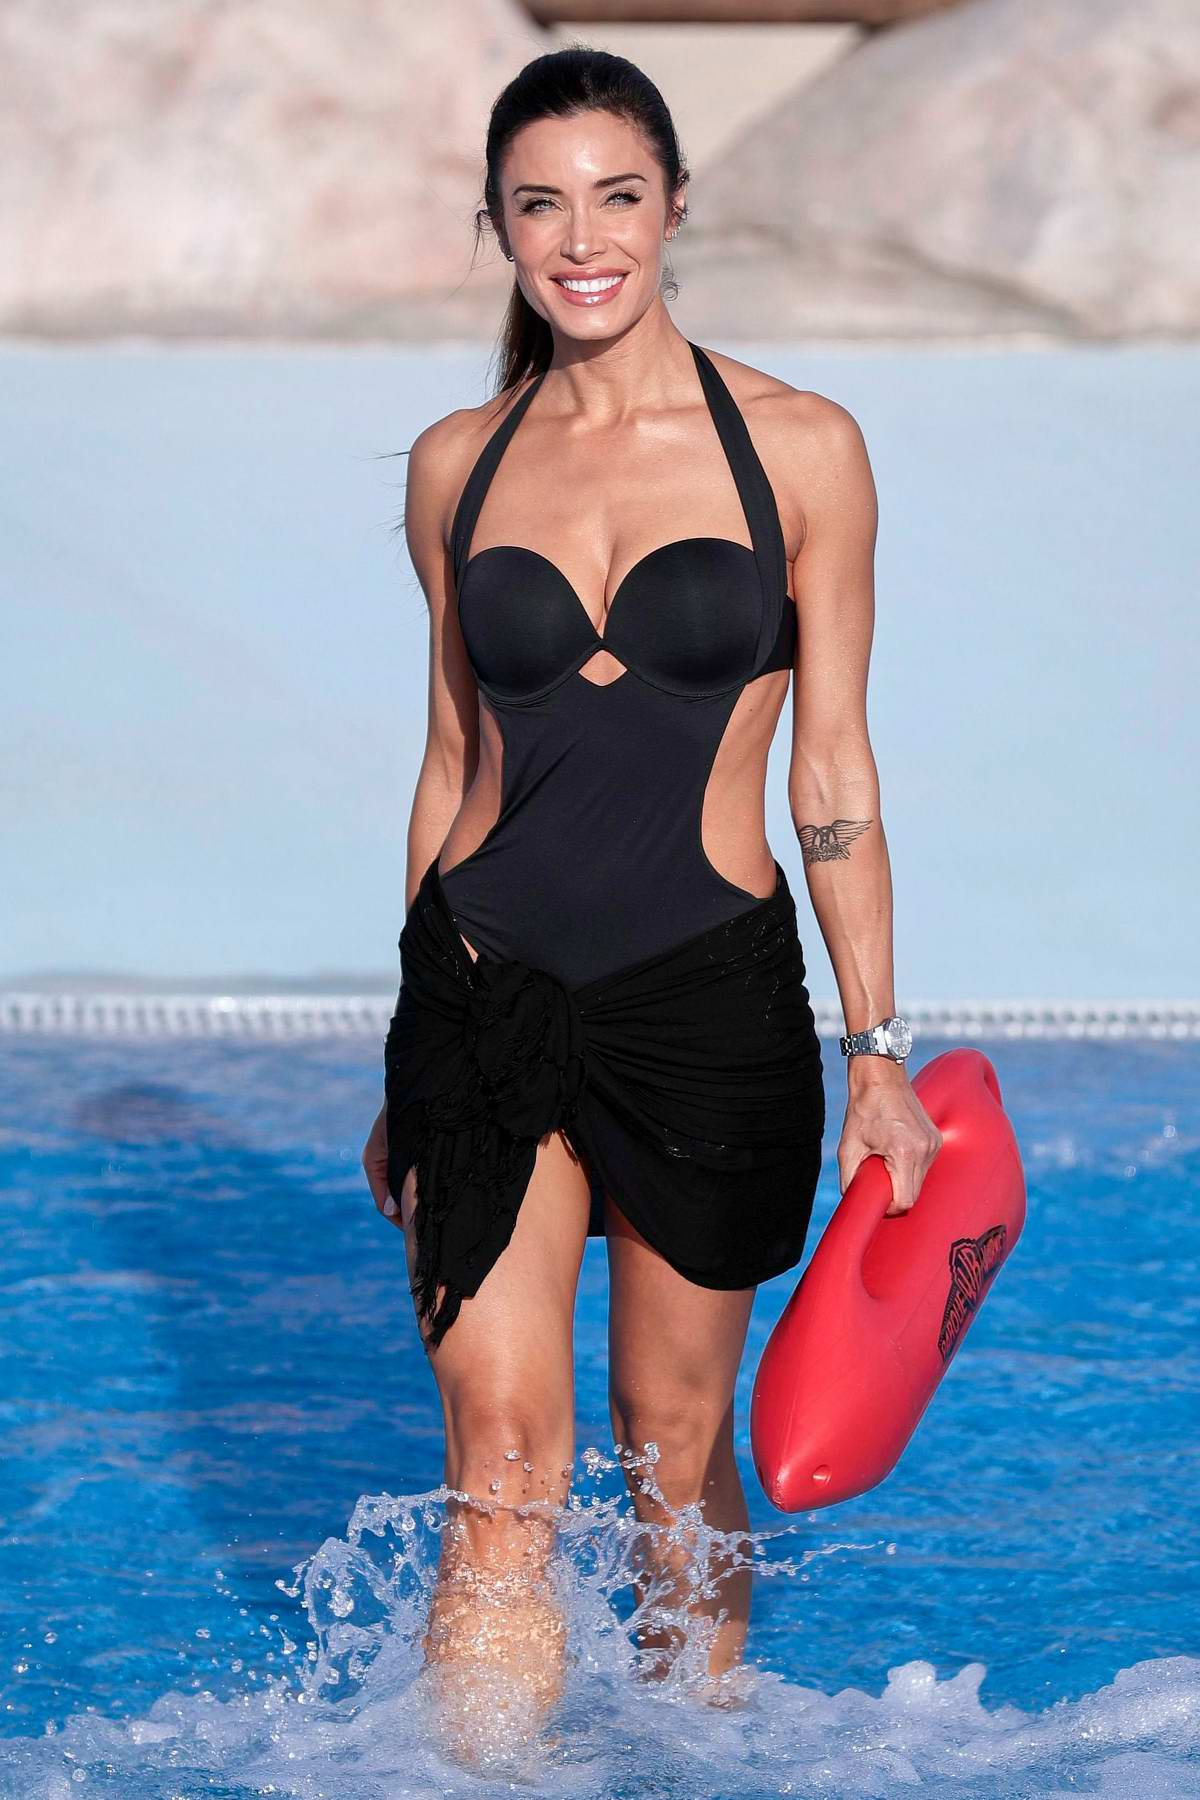 Pilar Rubio poses during the Summer Portrait Session at Parque Warner Beach in Madrid, Spain